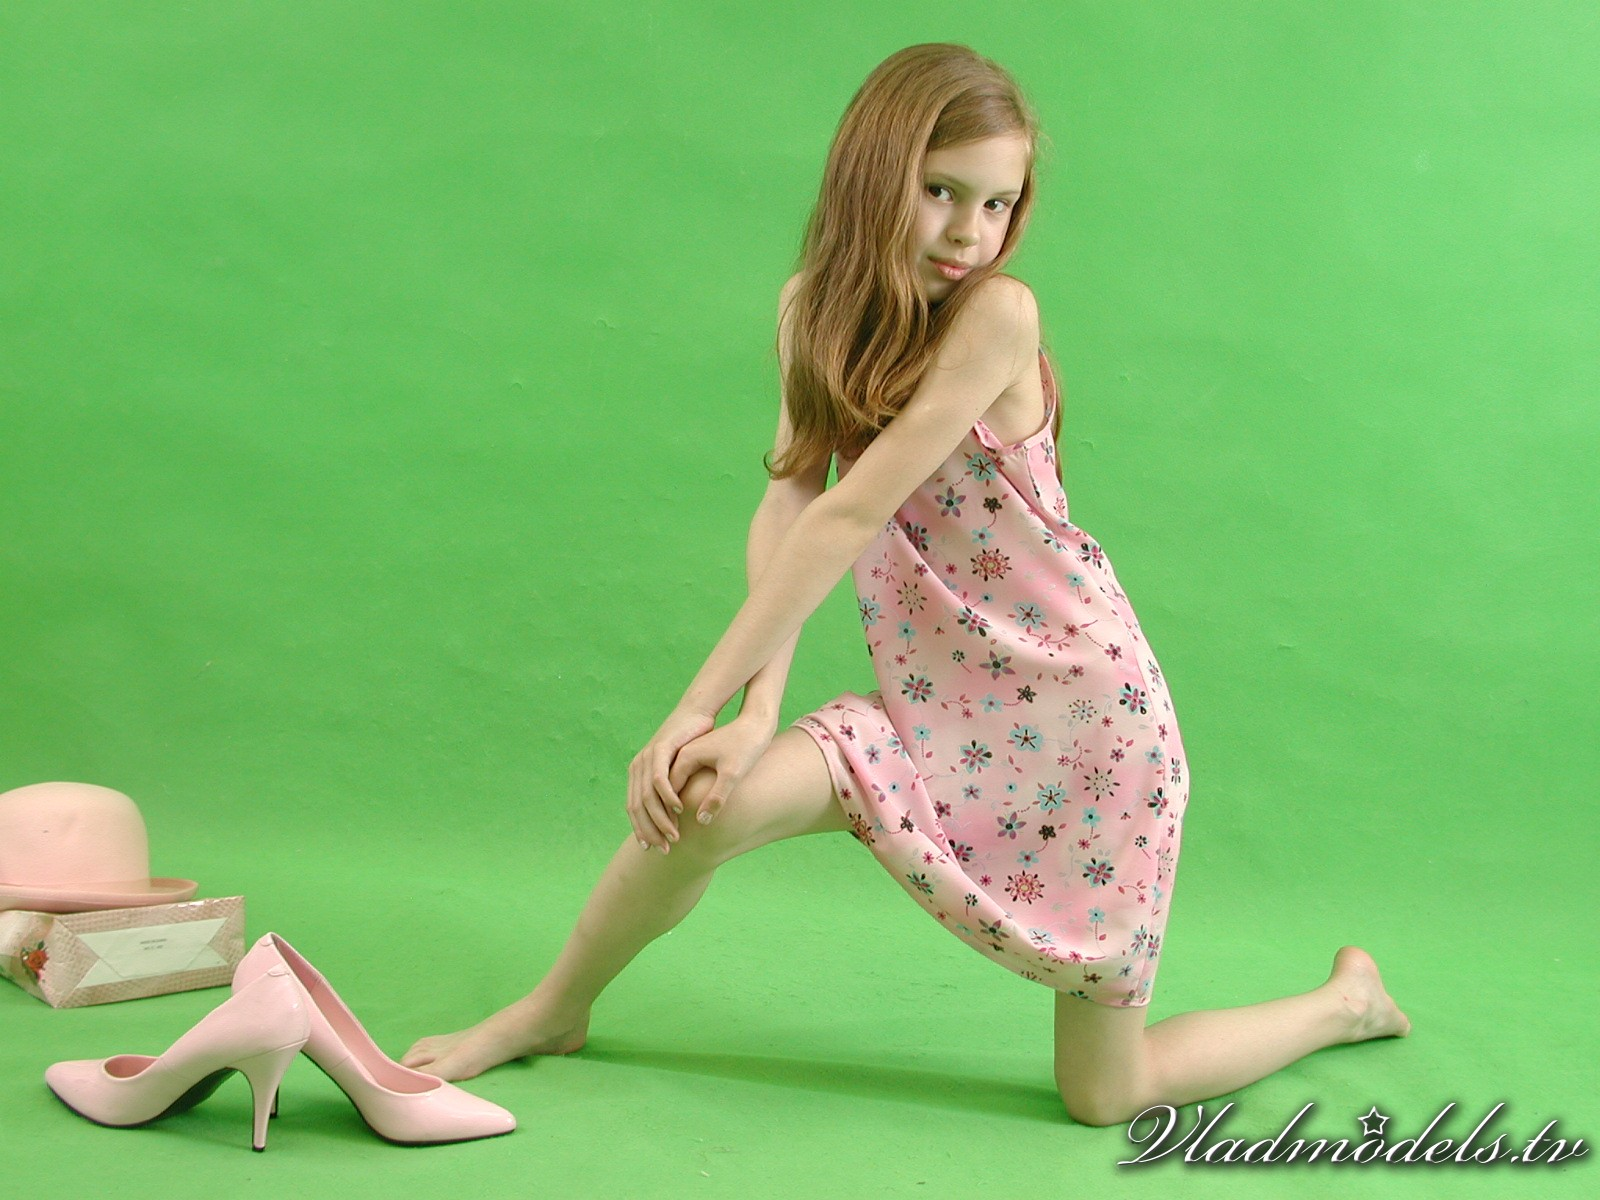 vladmodels free pics of child and preteen models